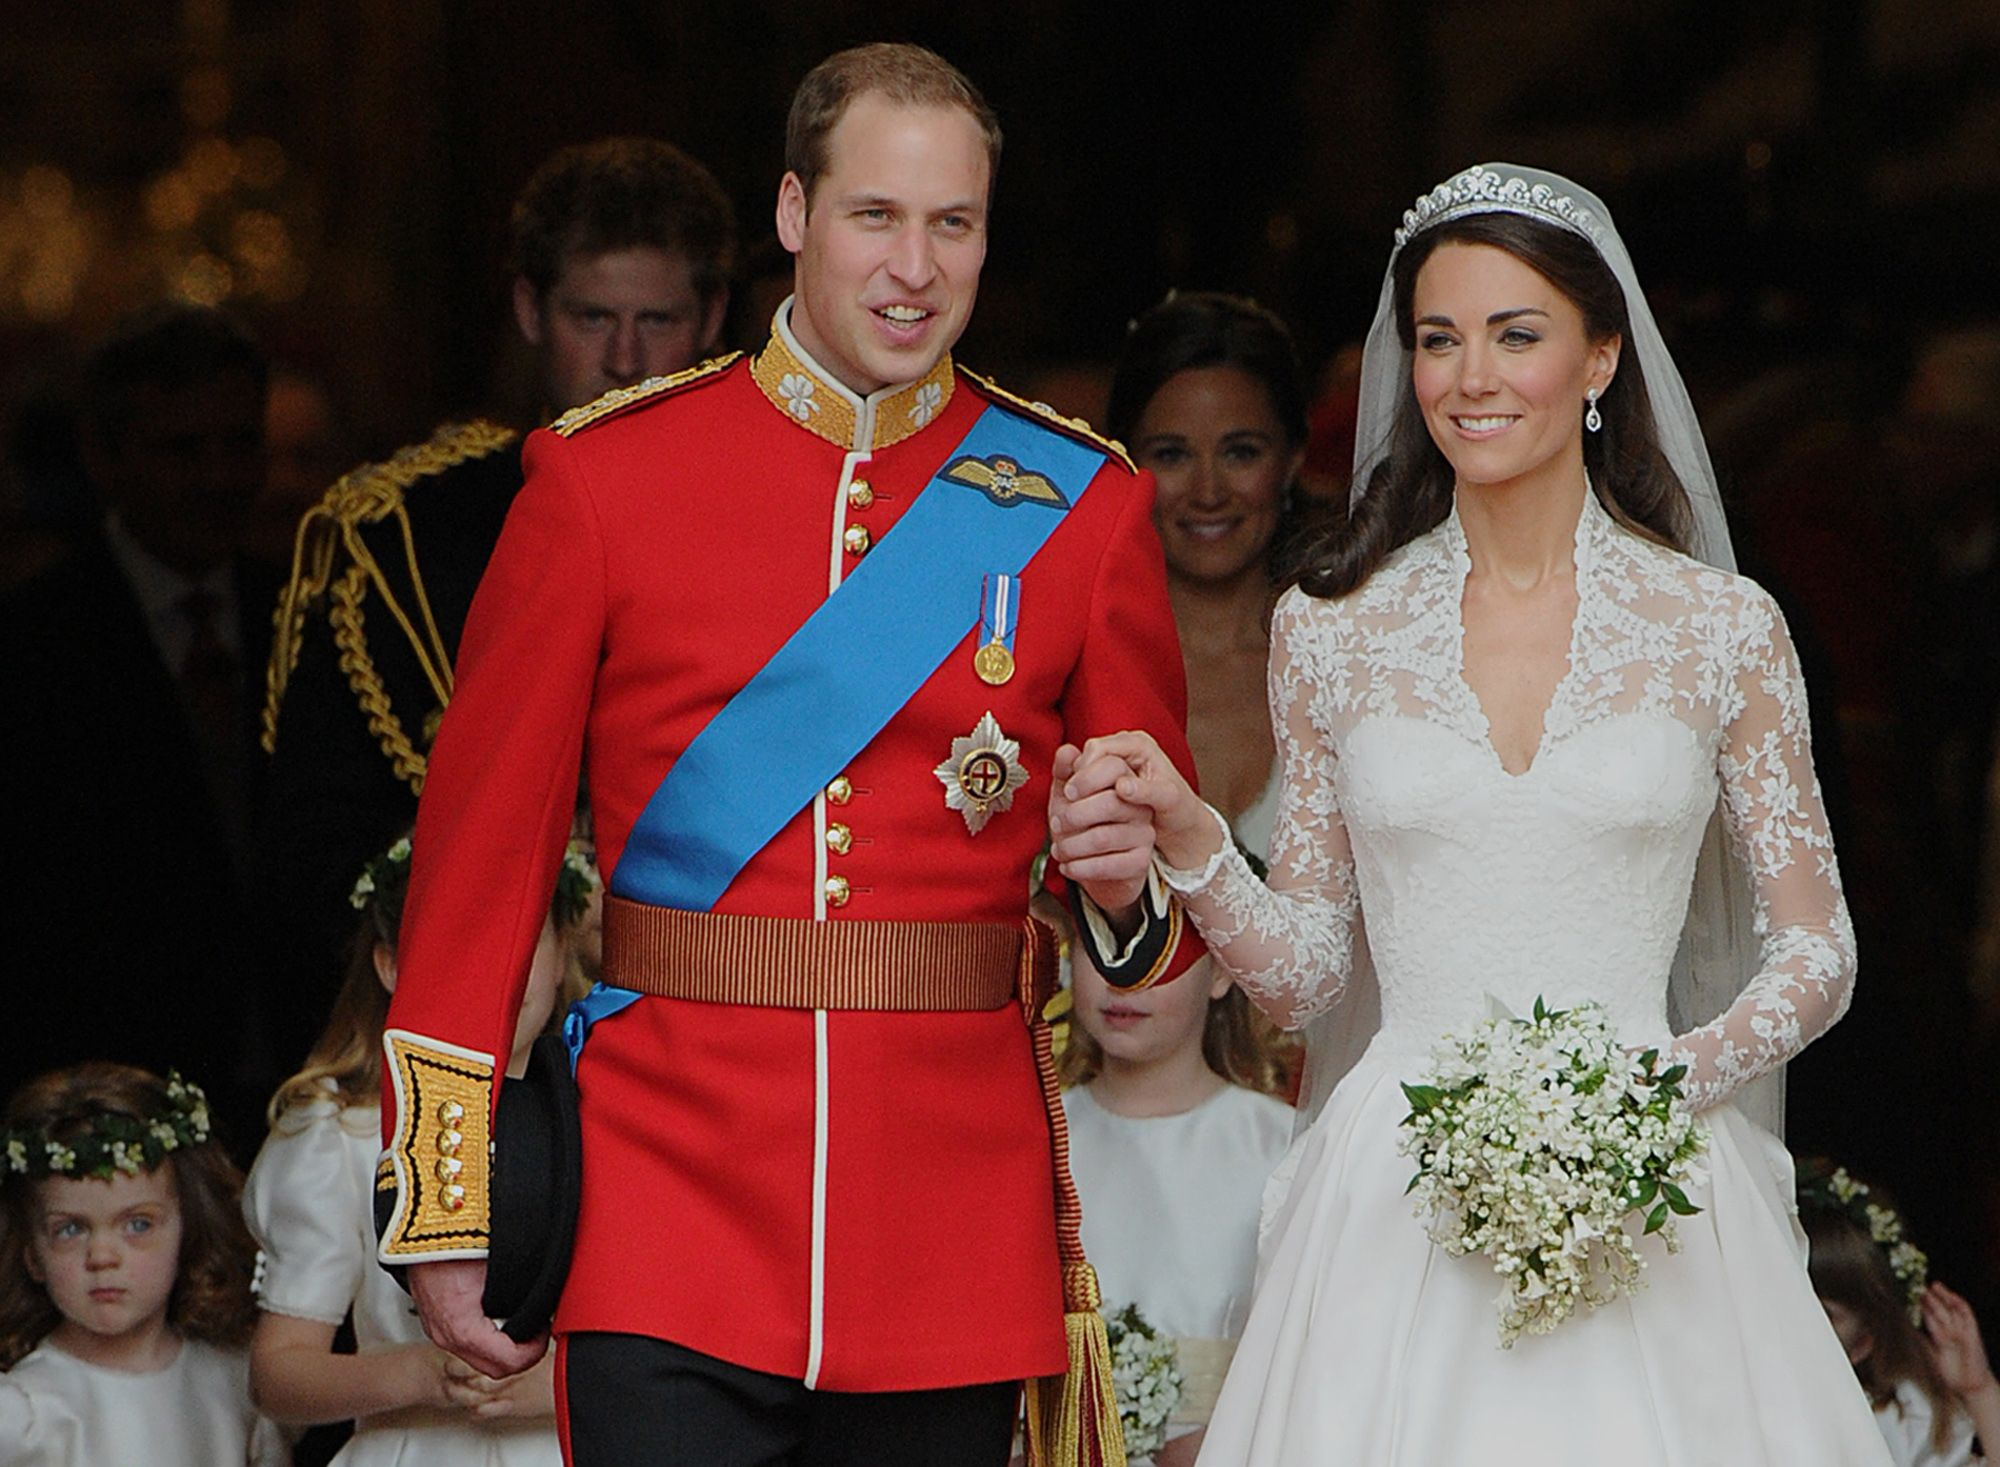 Kate Middleton and Prince William at their wedding